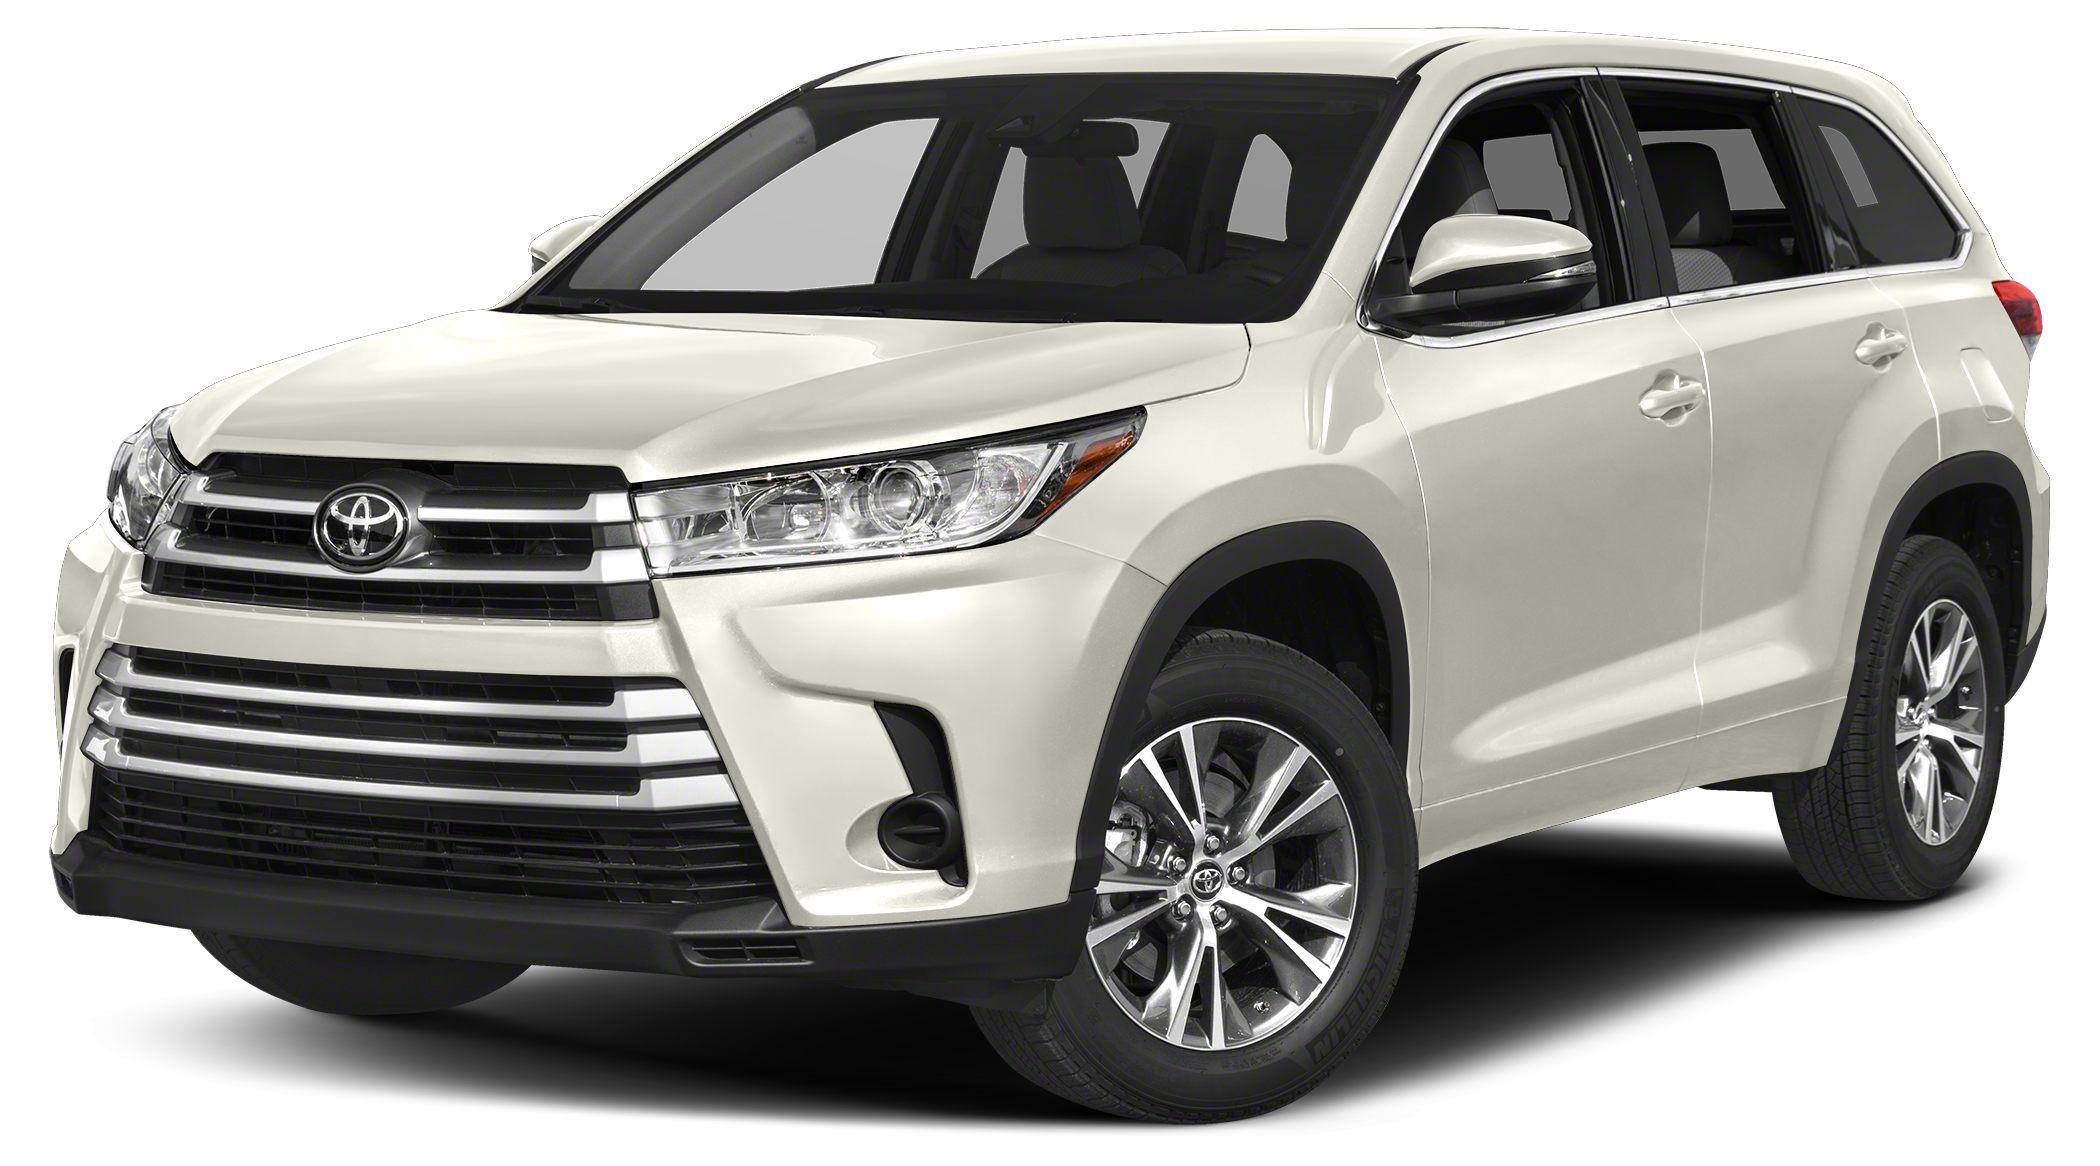 2017 Toyota Highlander LE Plus Westboro Toyota is proud to present HASSLE FREE BUYING EXPERIENCE w